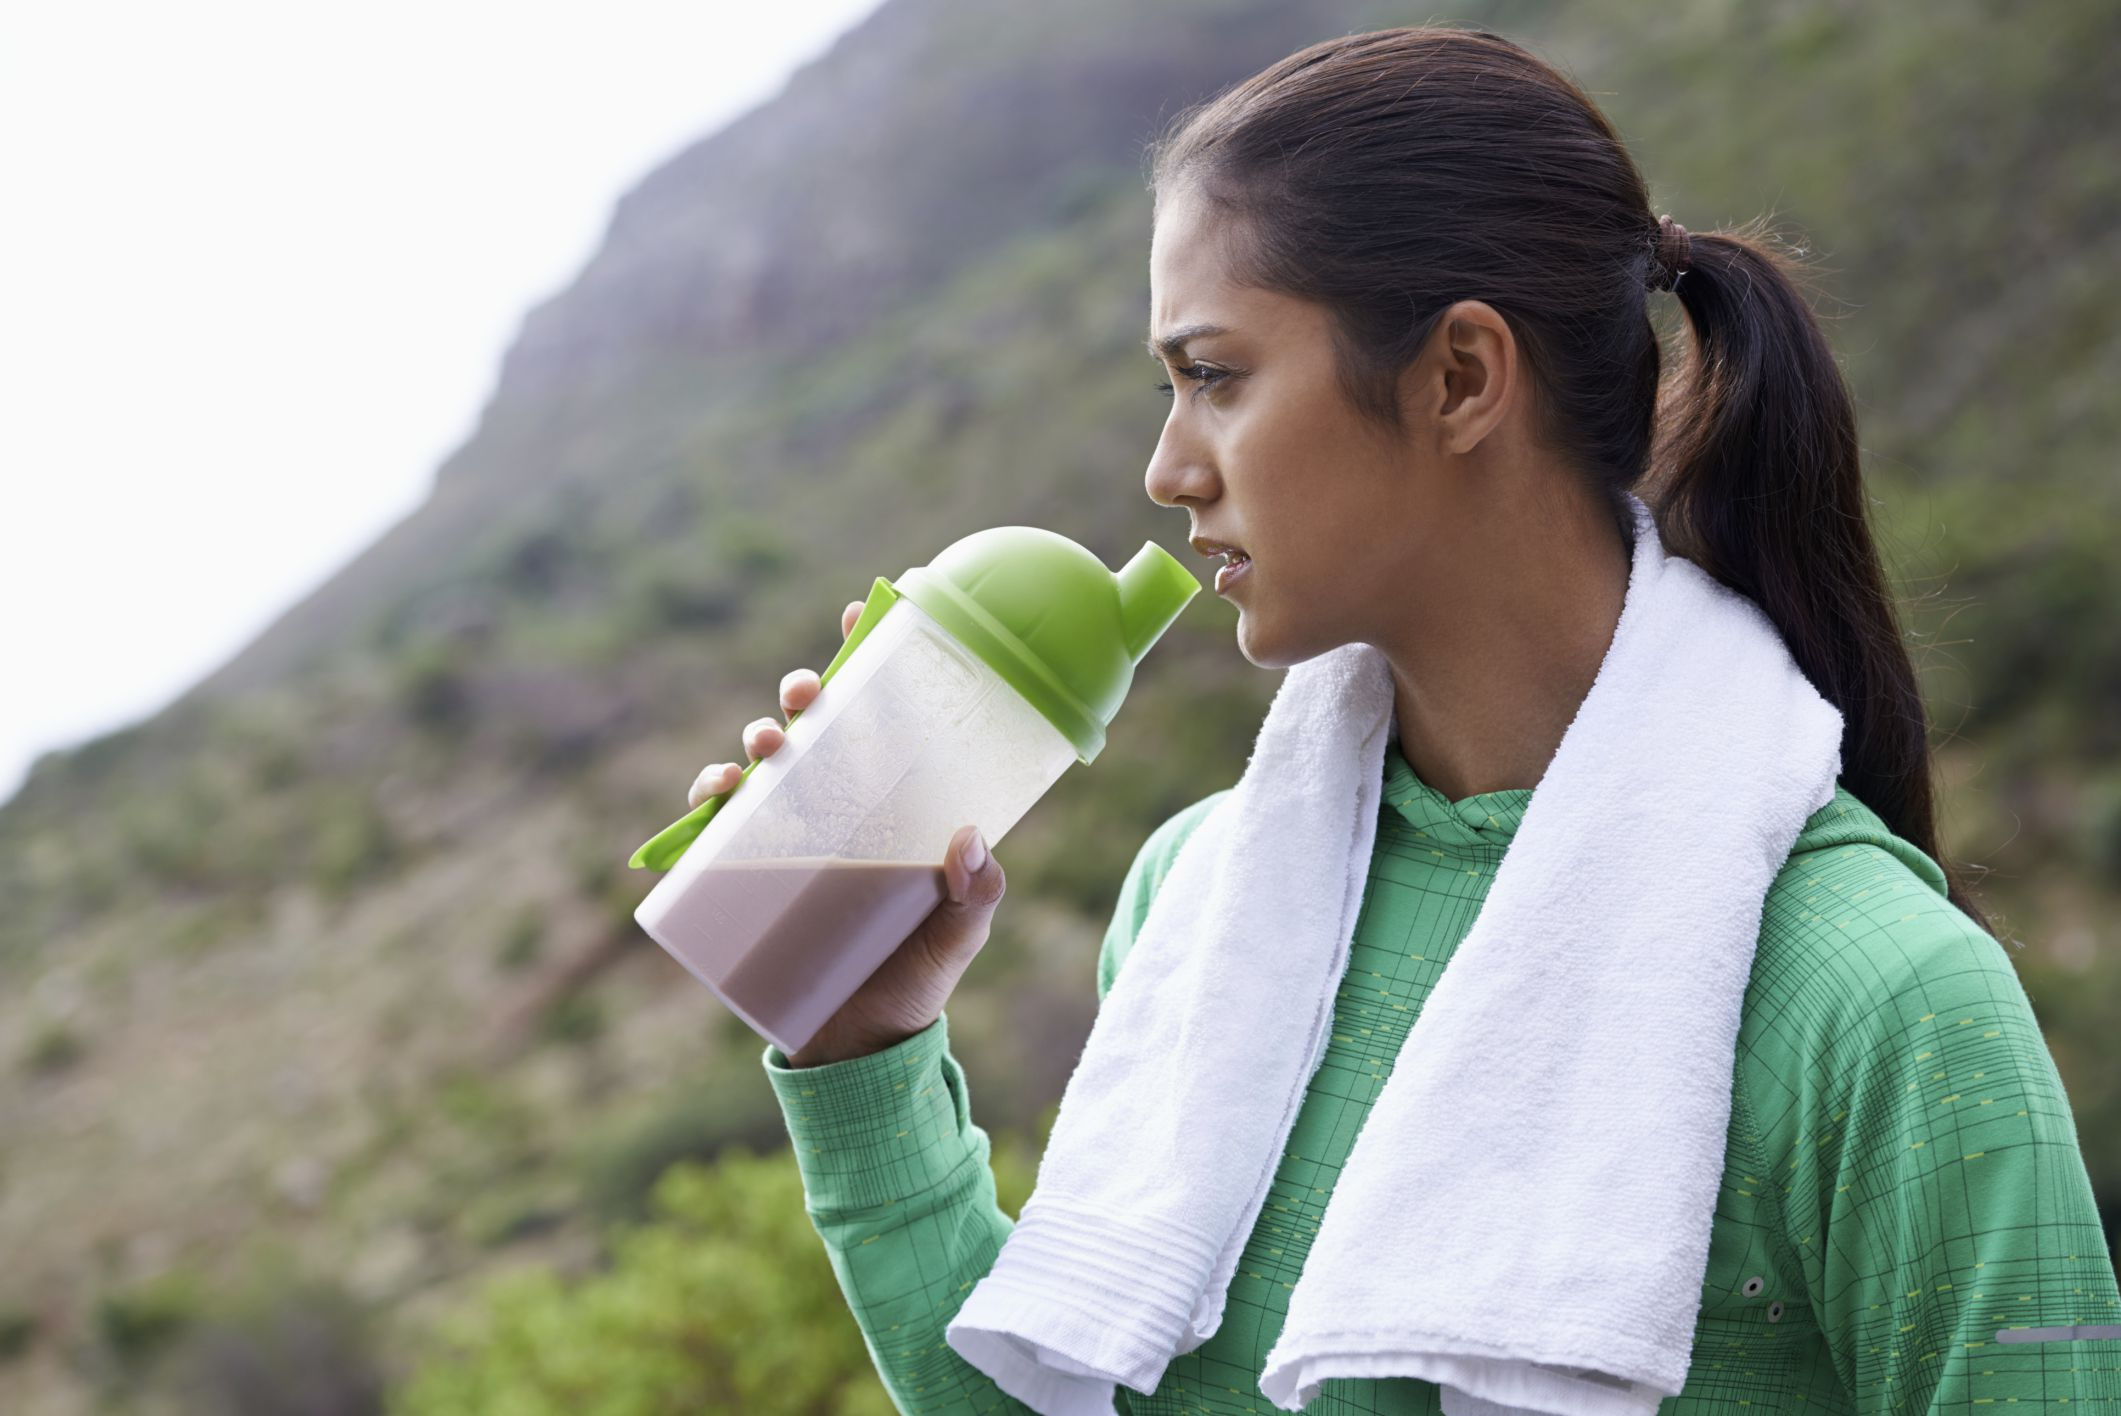 How to Avoid the 5 Biggest Workout Mistakes